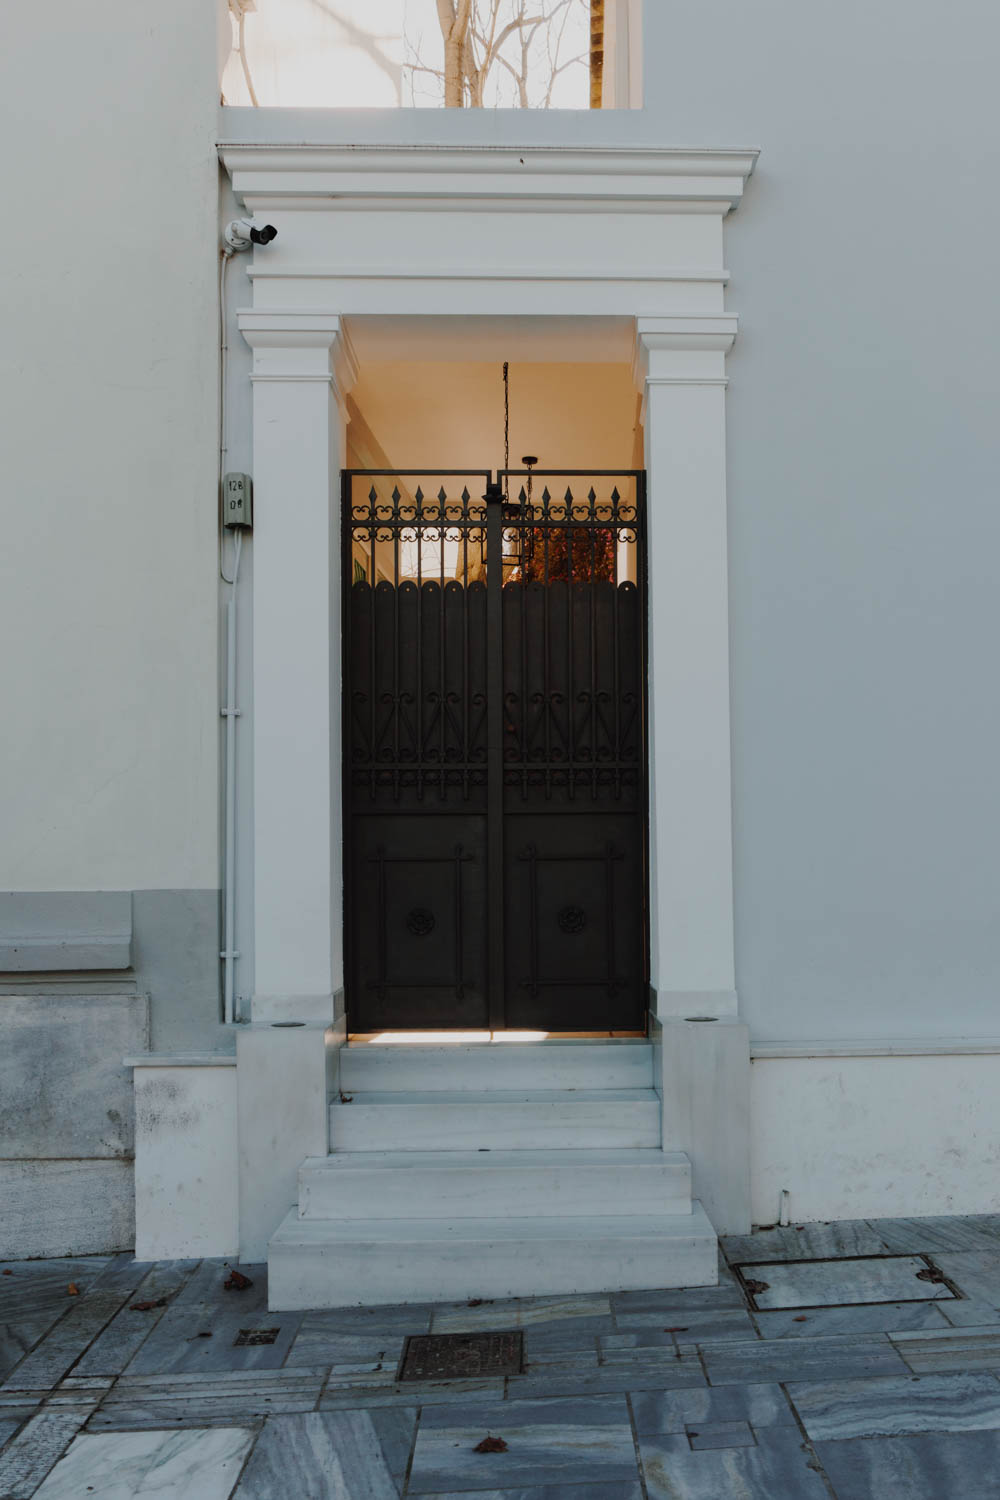 athens greece travel guide doorway rgdaily blog rebecca goddard